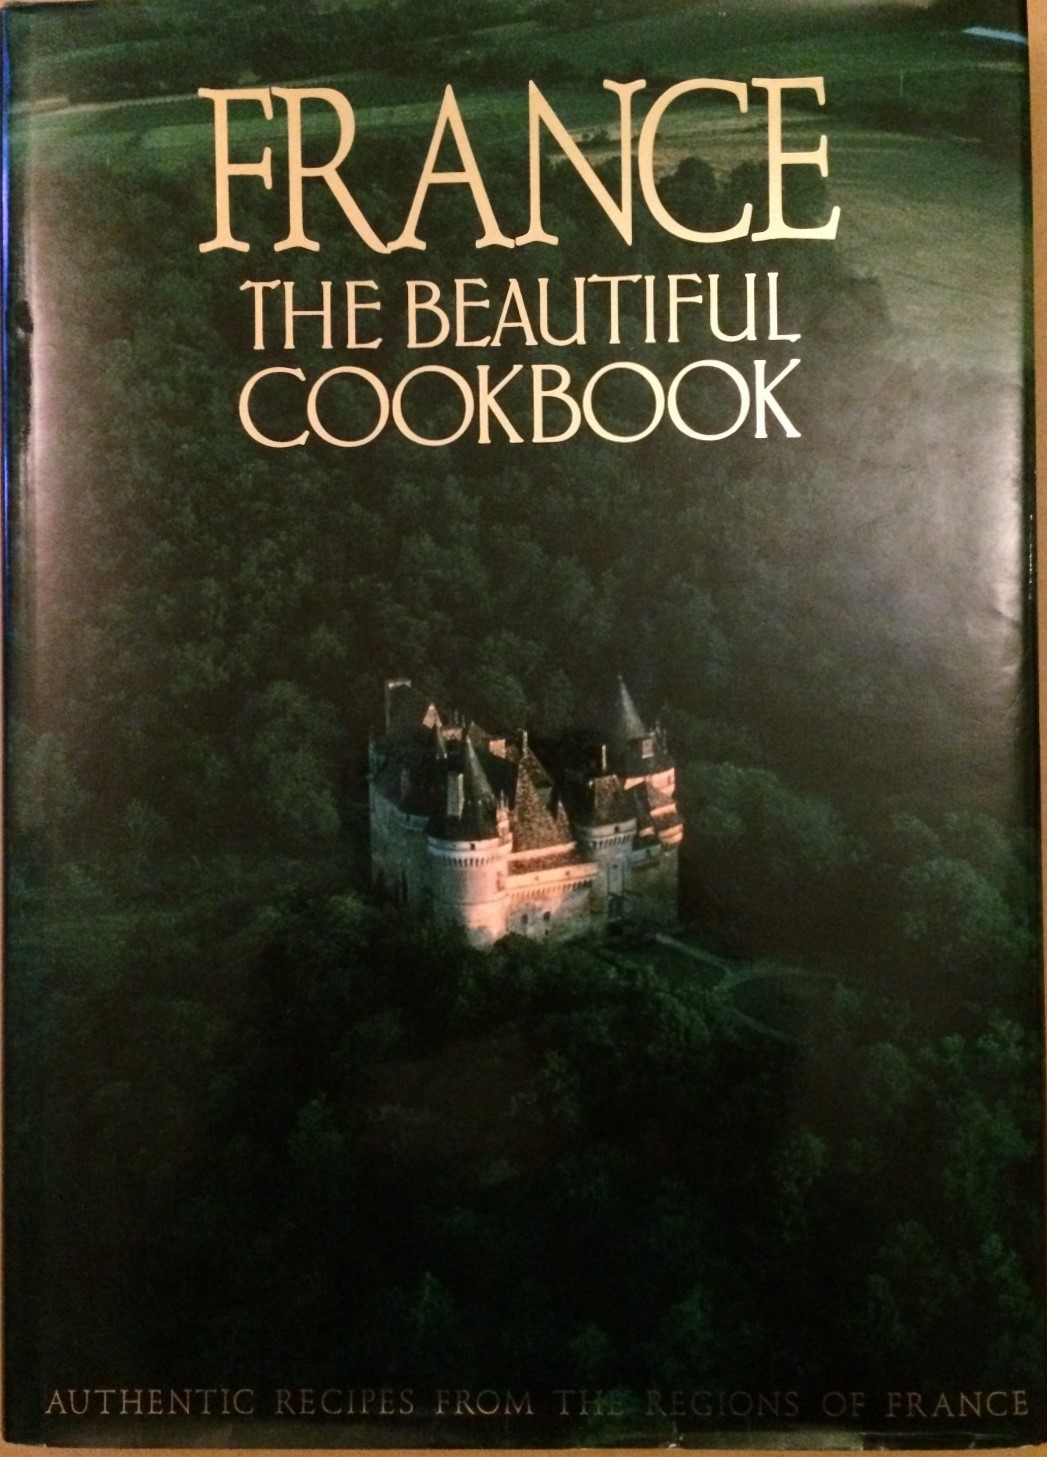 Image for France: The Beautiful Cookbook - Authentic Recipes from the Regions of France